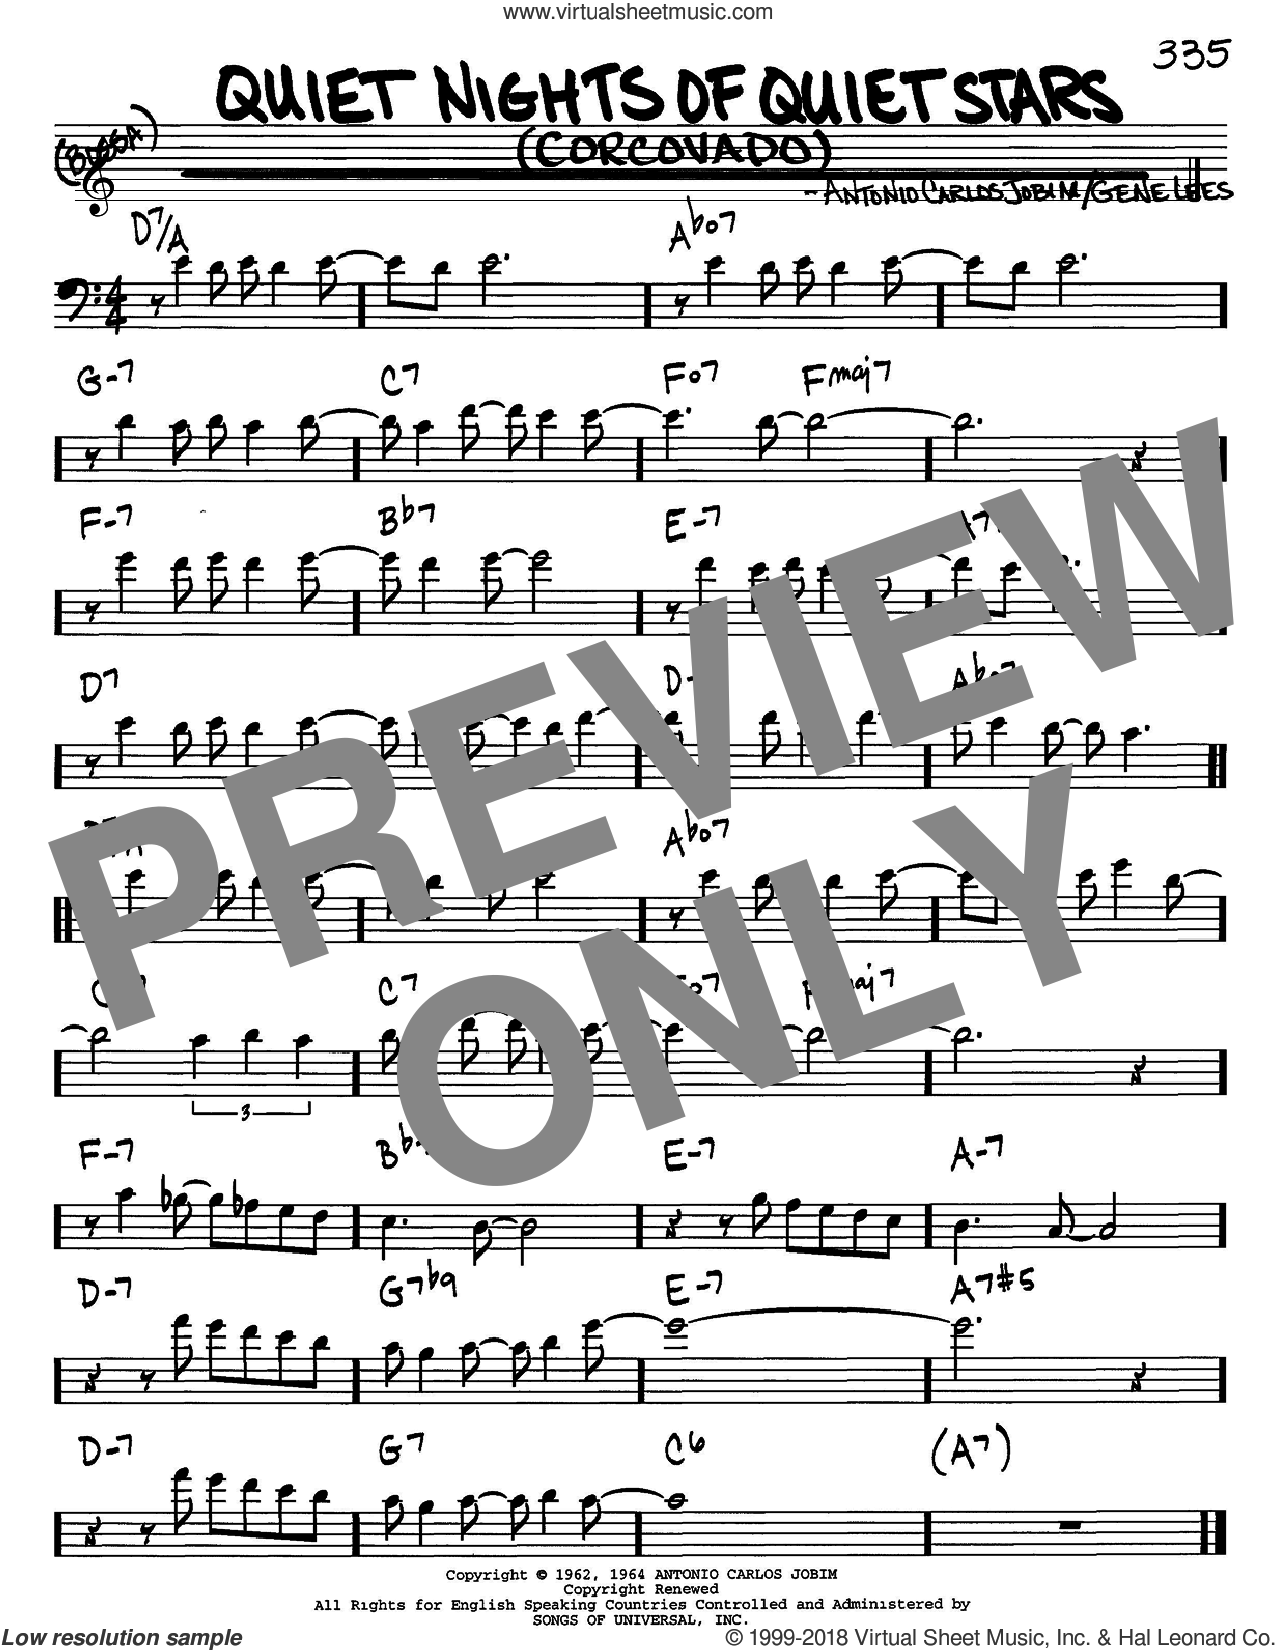 Quiet Nights Of Quiet Stars (Corcovado) sheet music for voice and other instruments (bass clef) by Antonio Carlos Jobim, Andy Williams and Eugene John Lees, intermediate. Score Image Preview.